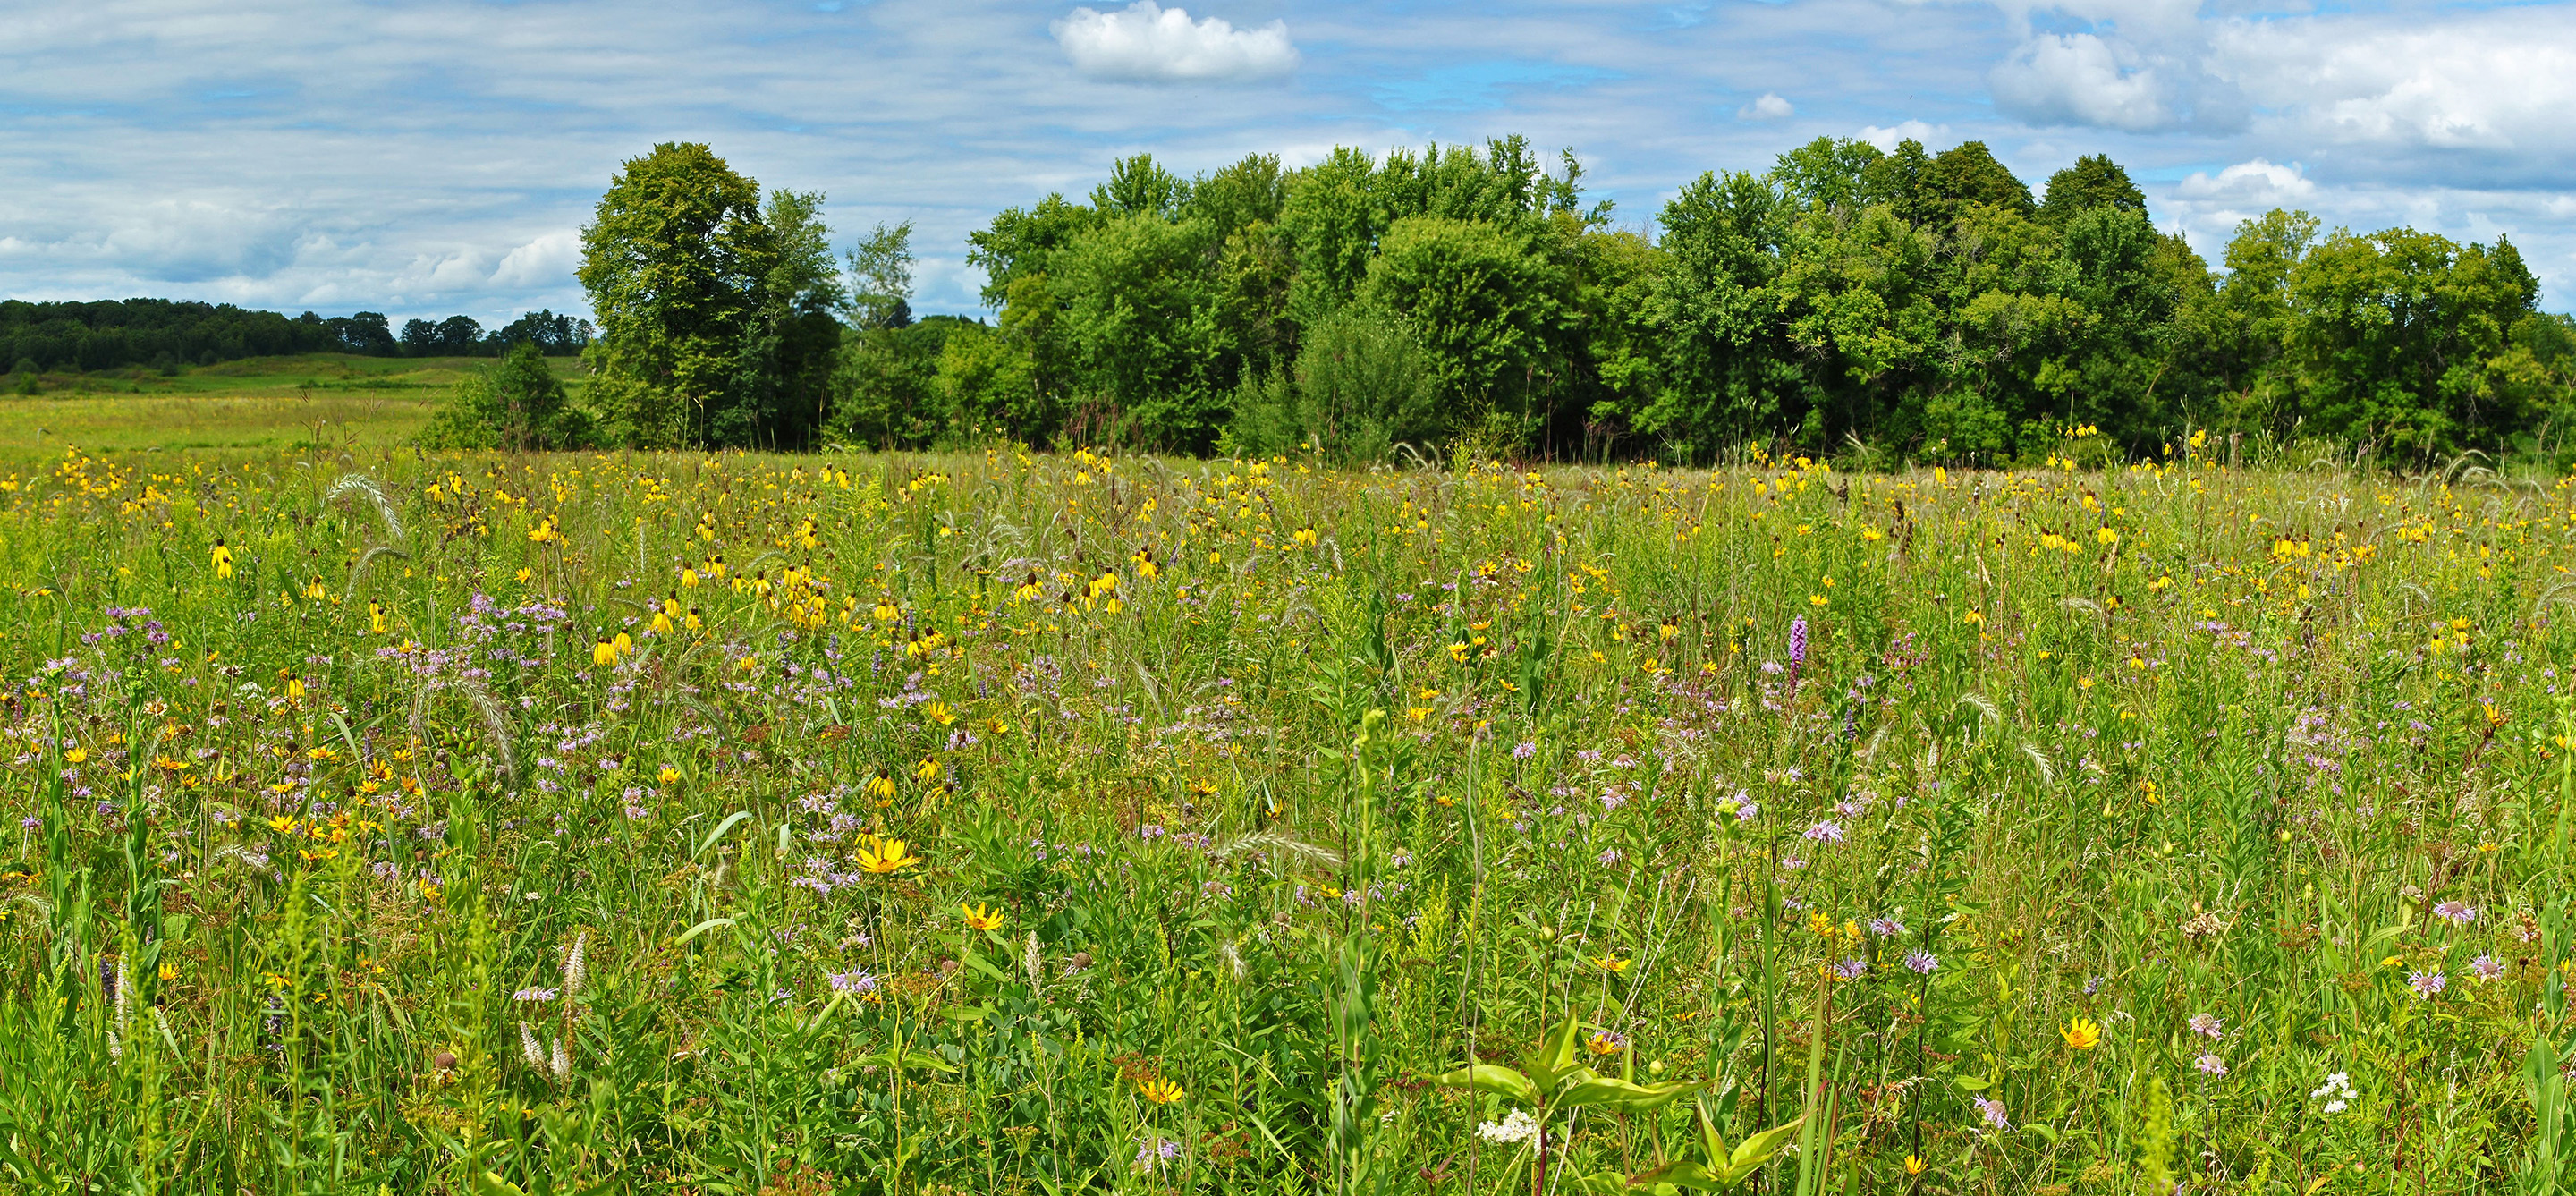 A Midwestern prairie full of yellow and purple flowers